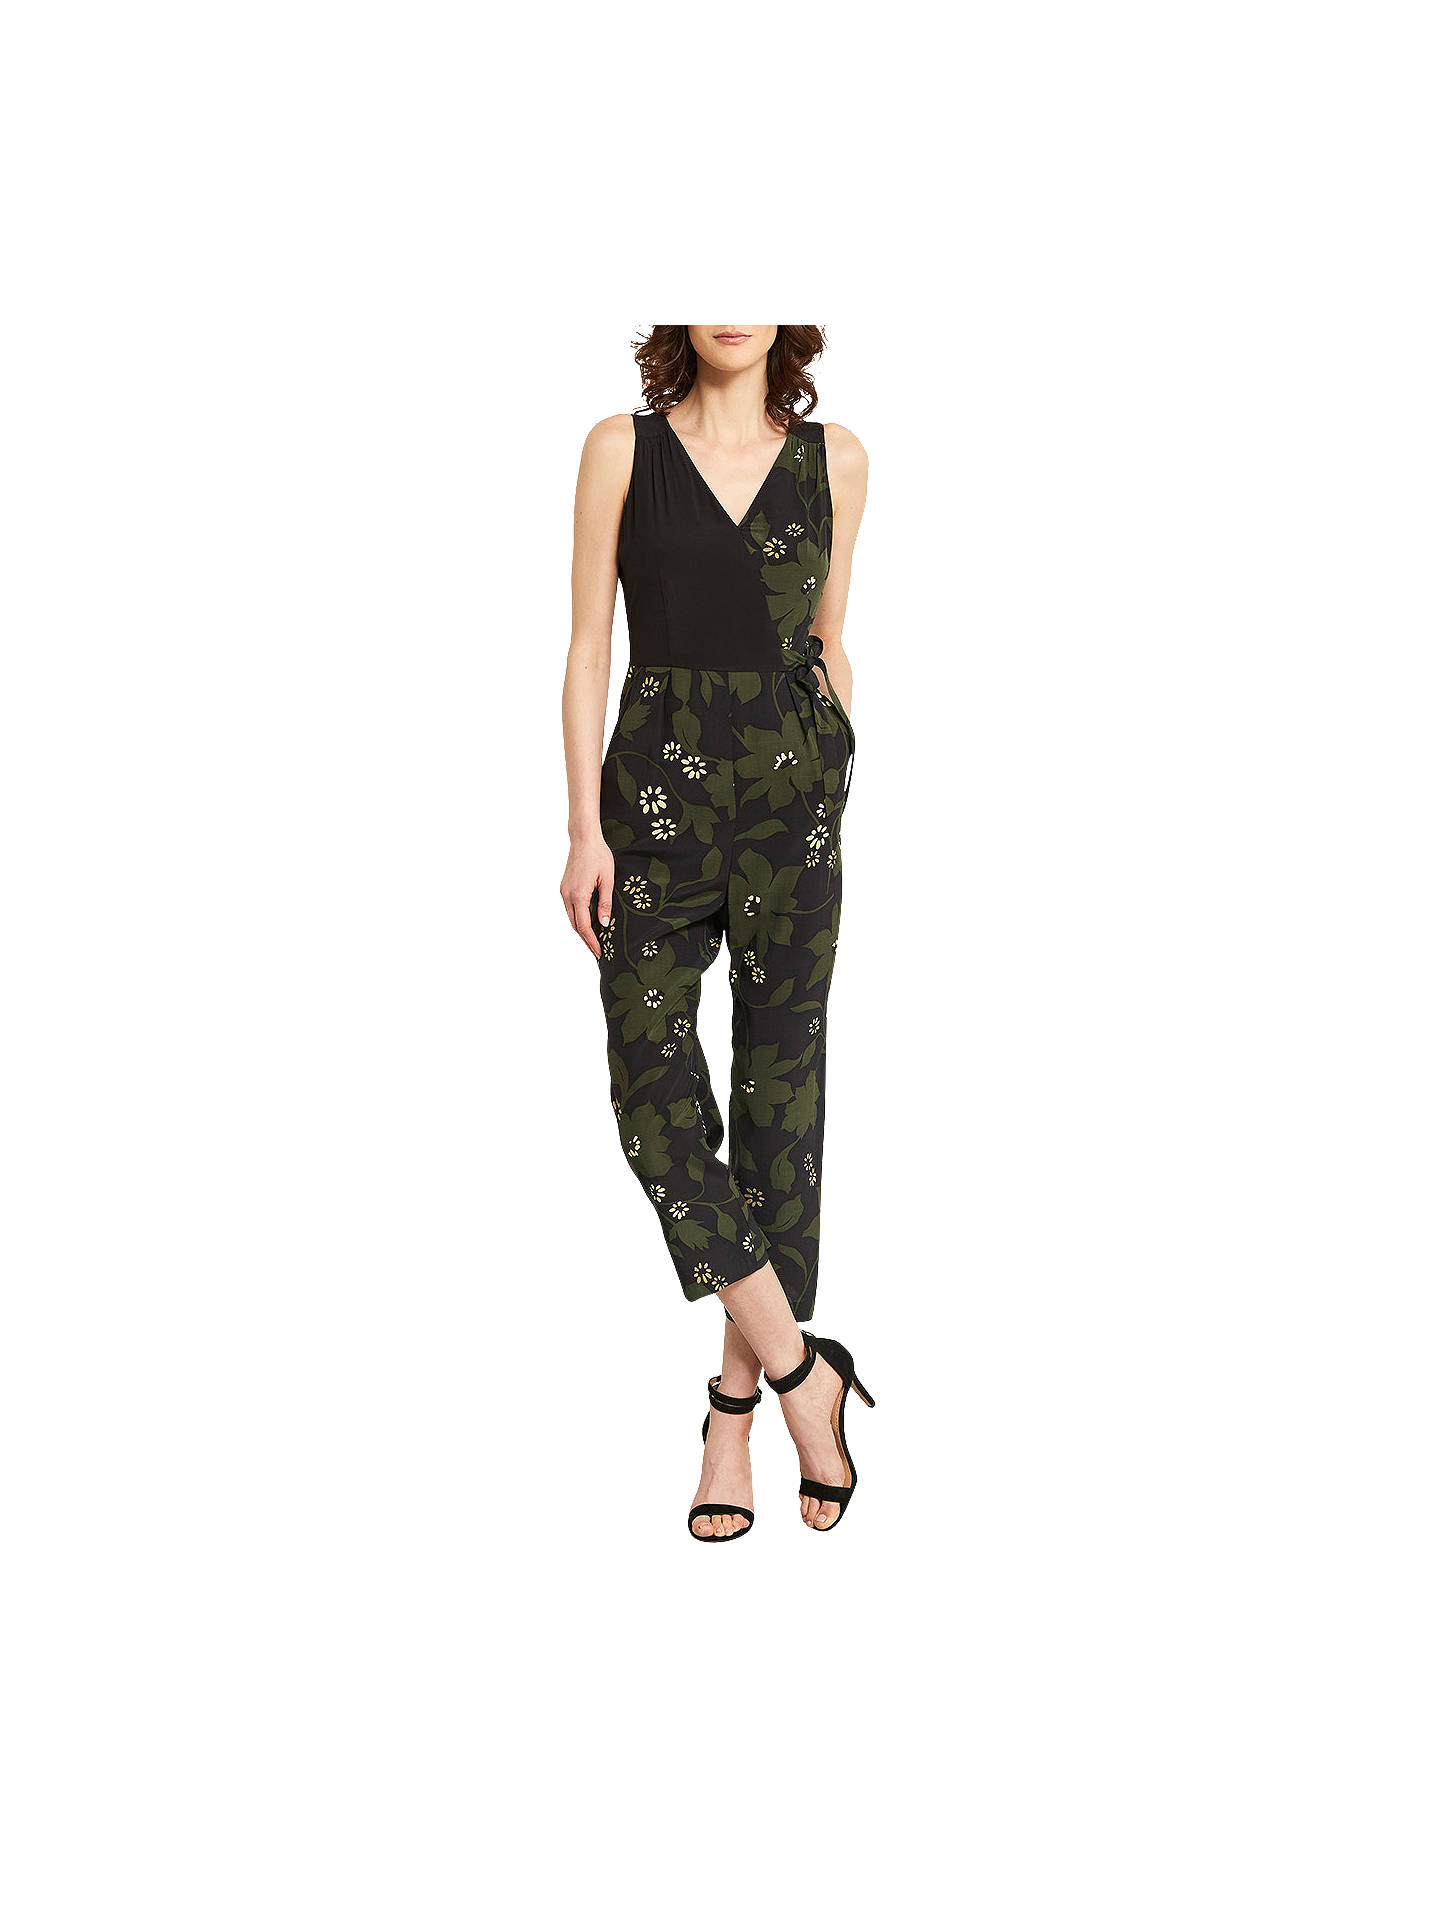 ce38f170764a8 Buy Mint Velvet Bethany Wrap Printed Jumpsuit, Multi, 6 Online at  johnlewis.com ...